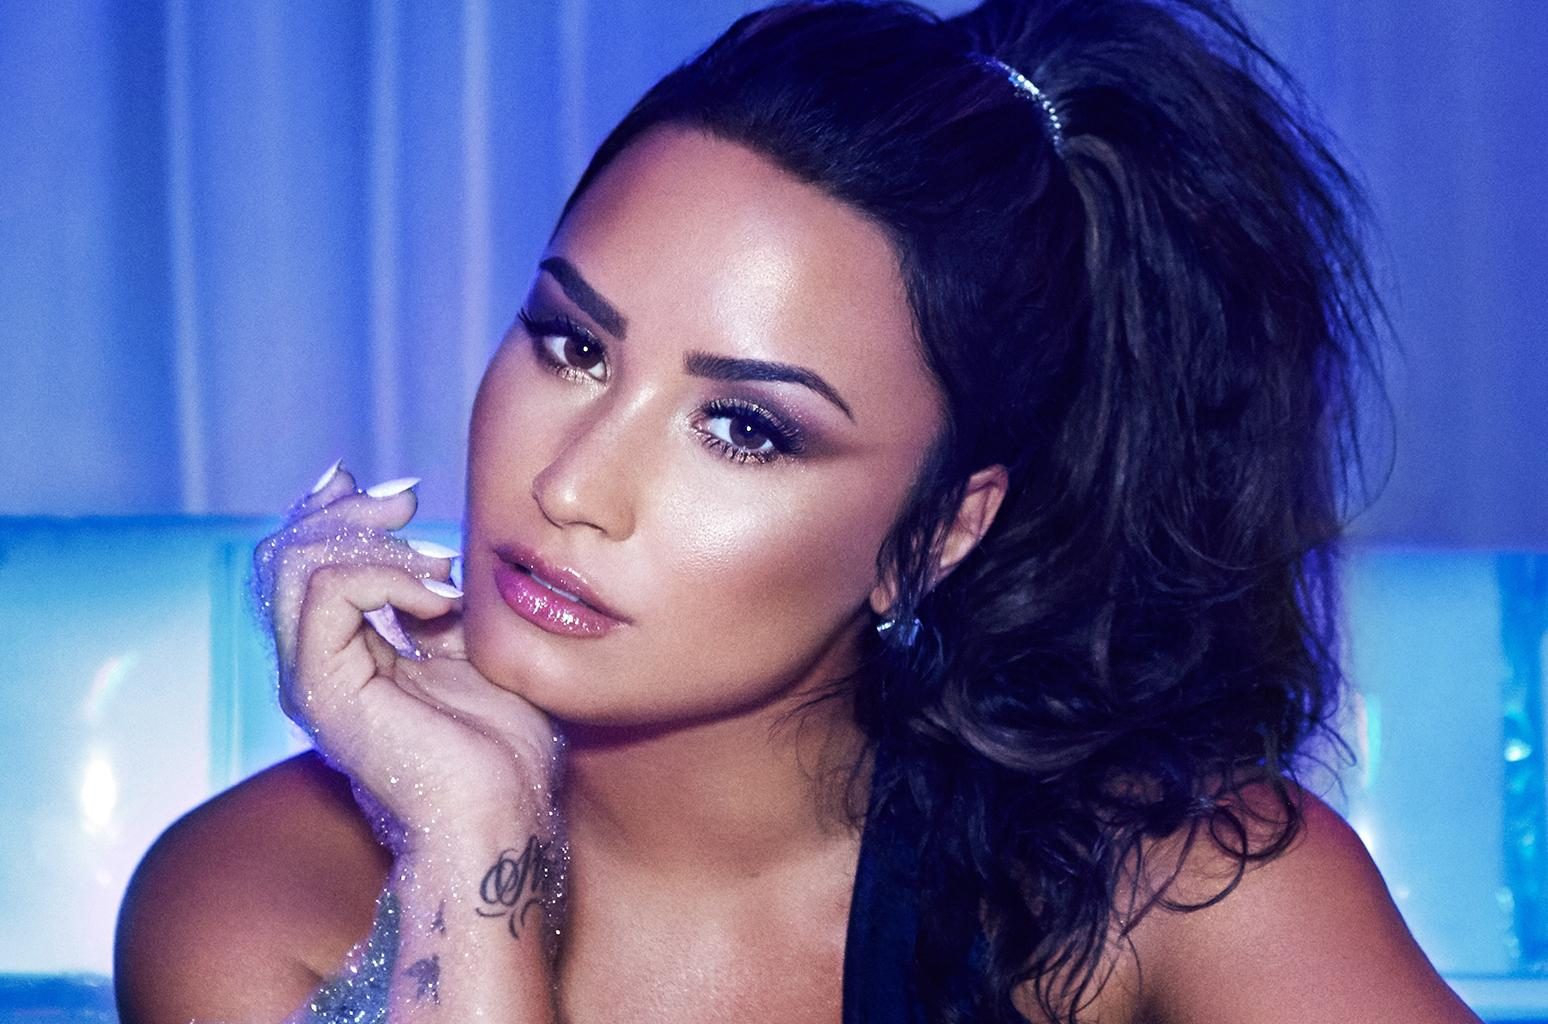 Demi Lovato Talks About Her Overdose, Having A Family, And Religion In New Interview